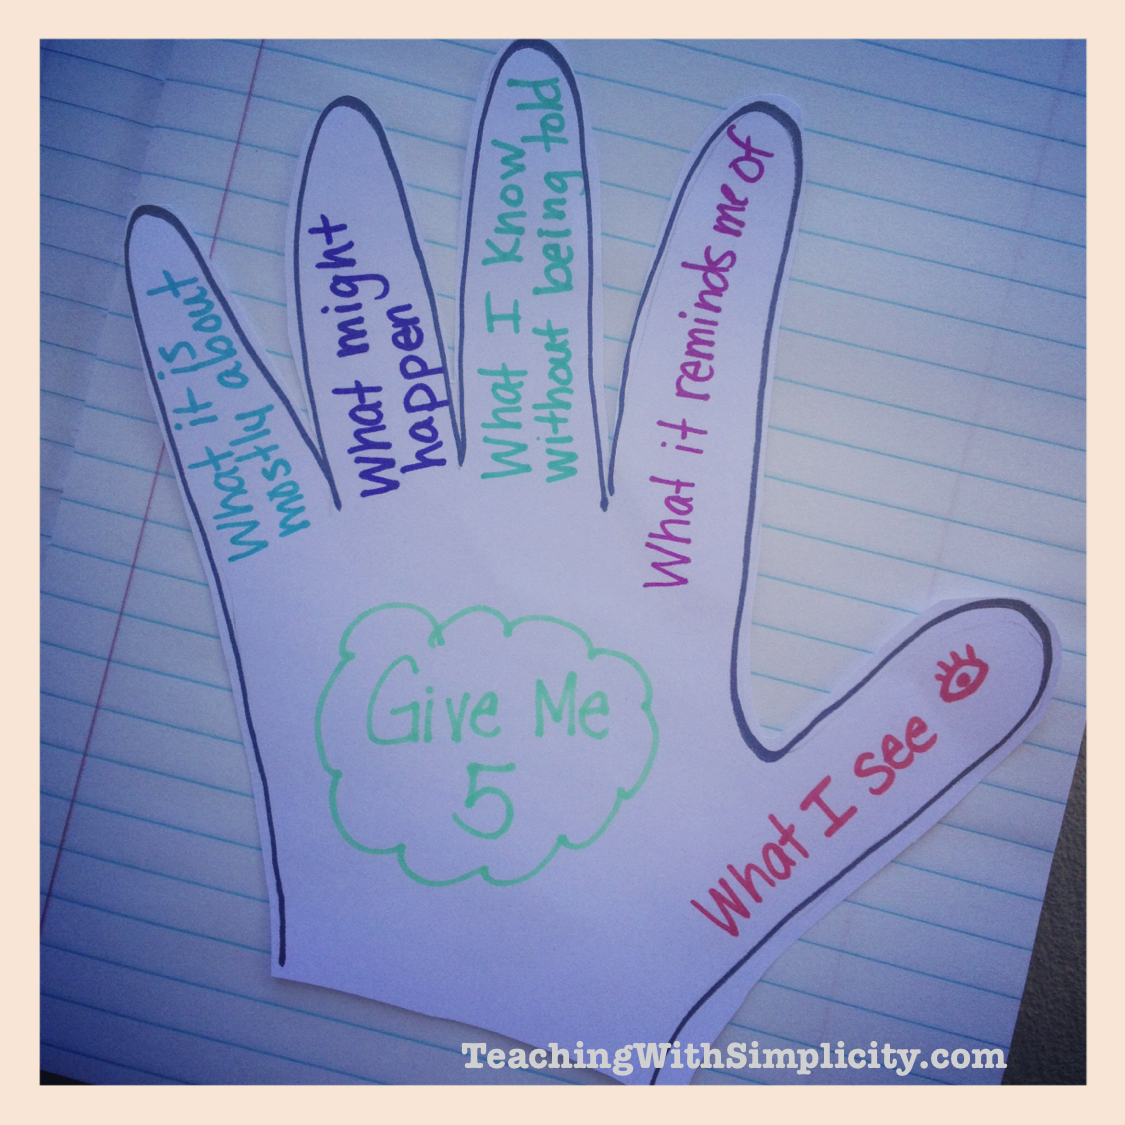 Differentiated Instruction with Give Me 5 Strategy